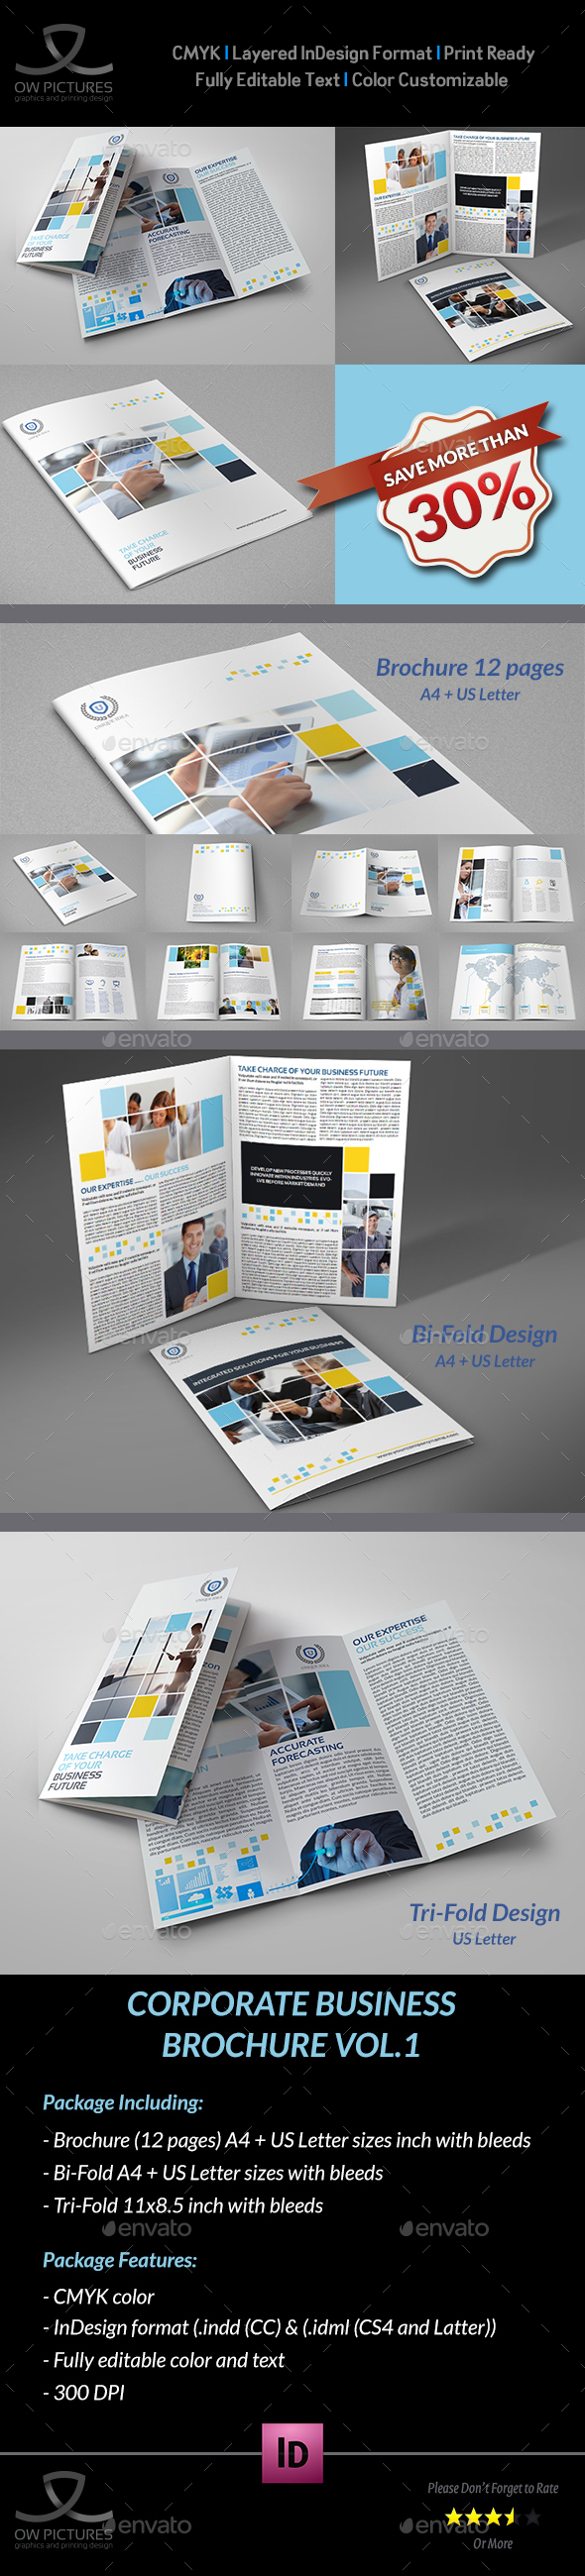 Company Brochure Bundle Vol.1 - Corporate Brochures